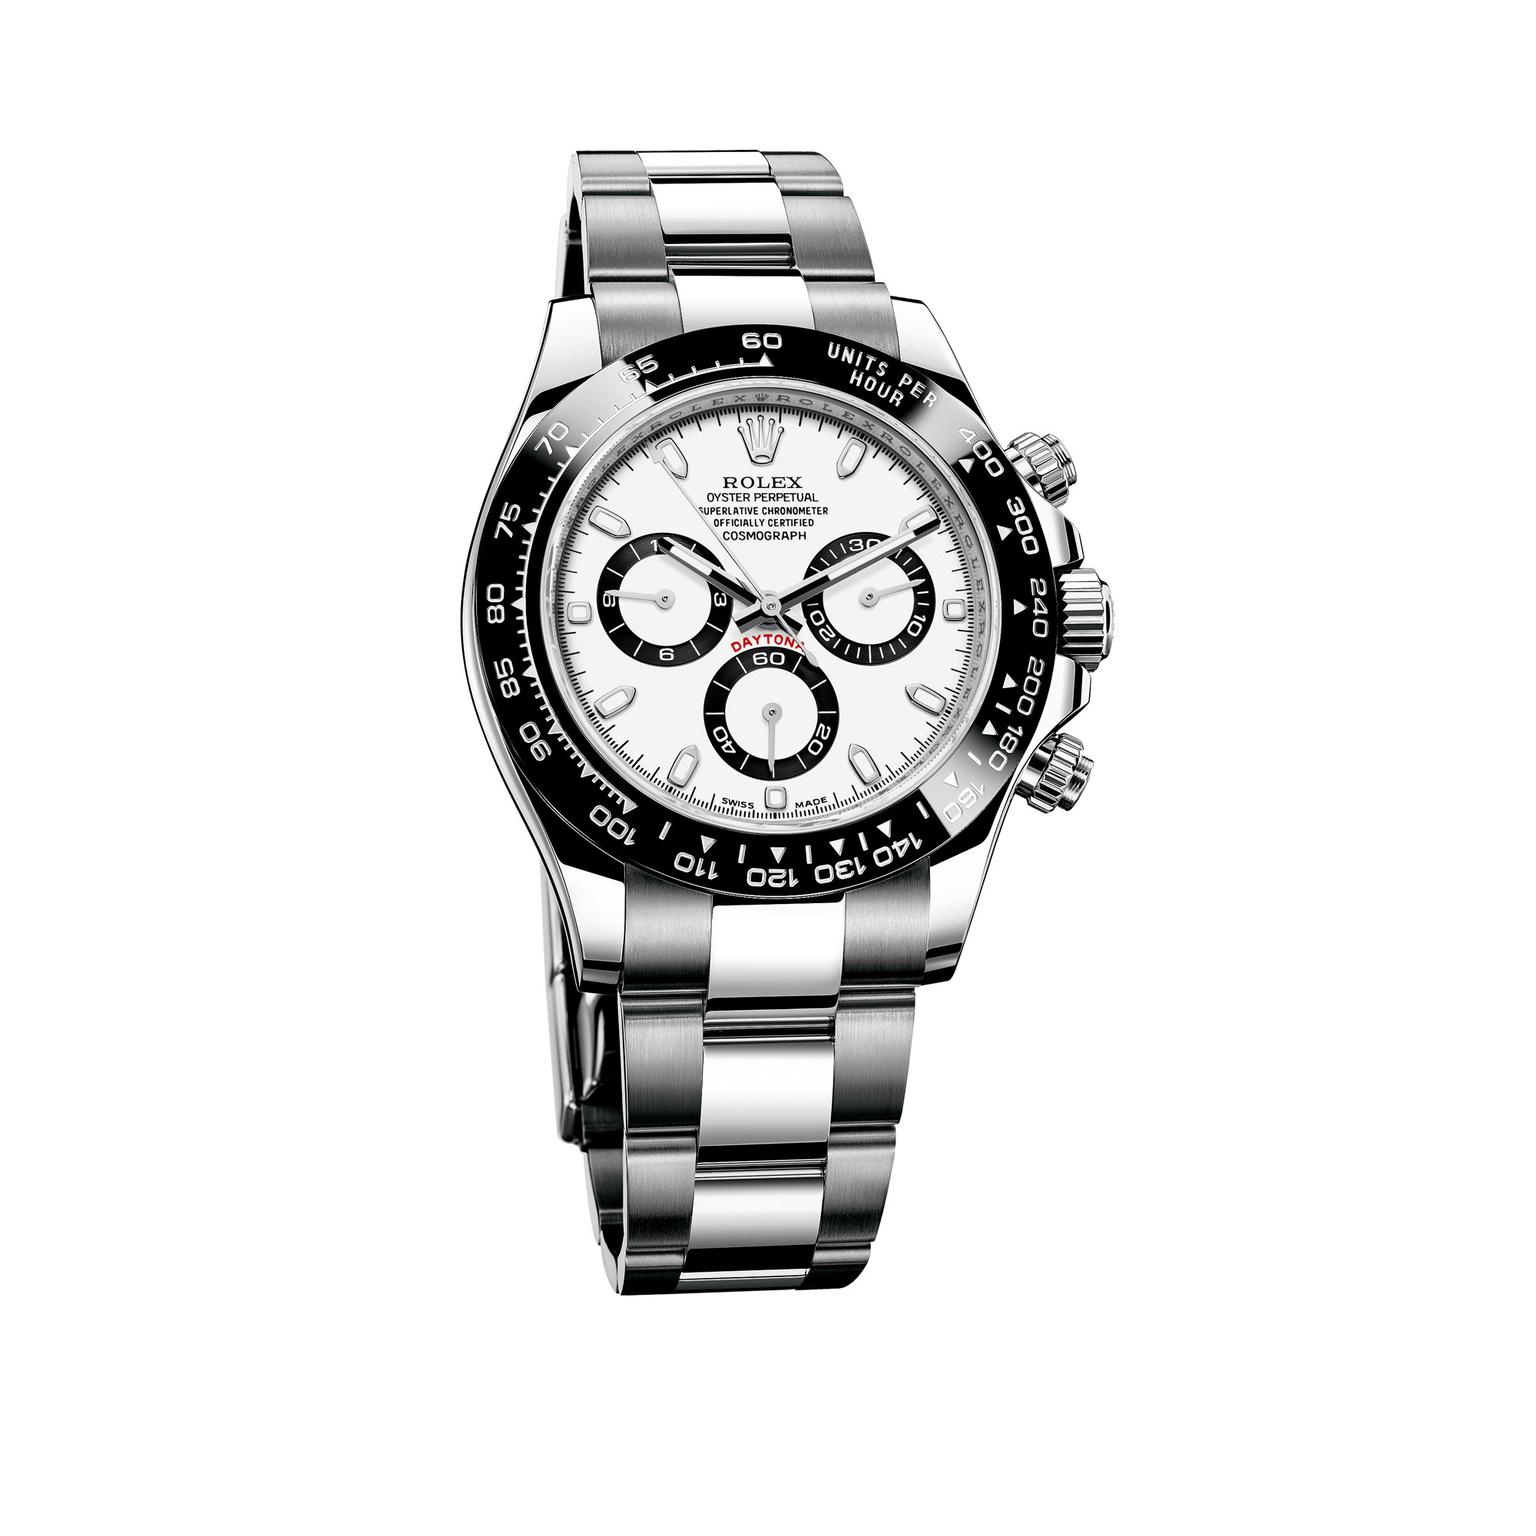 Steel Rolex Cosmograph Daytona Watch In Stainless Steel